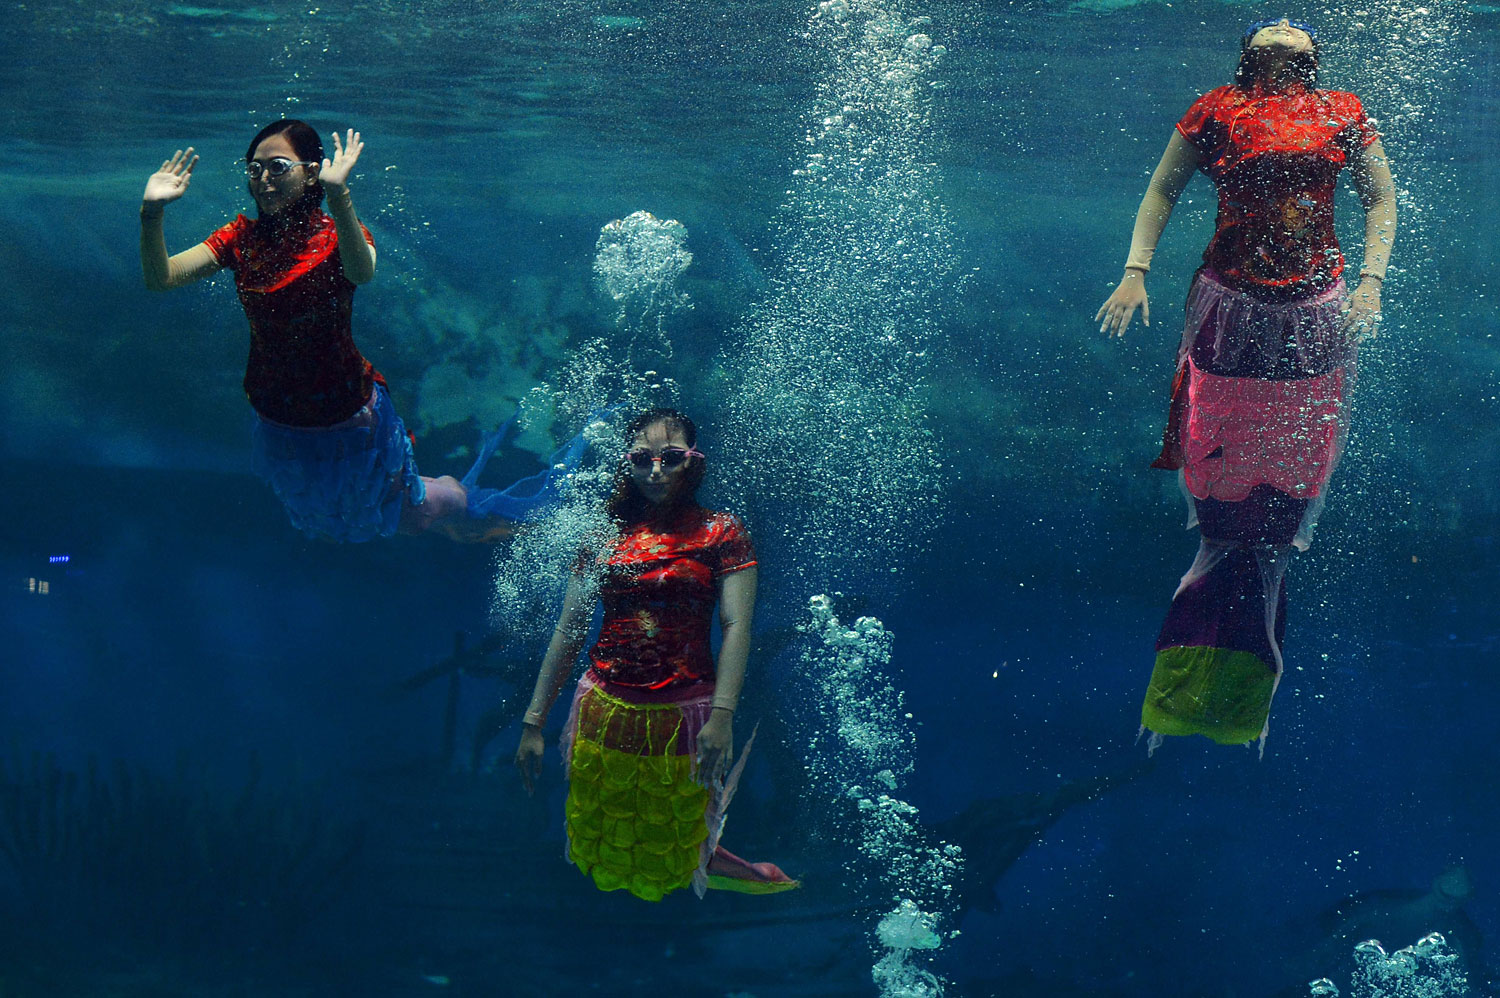 Indonesian performers dressed as mermaids wearing traditional Chinese cheongsam dress perform underwater in a special program celebrating the Lunar New Year at Jakarta's Ancol park on Jan. 31, 2014.